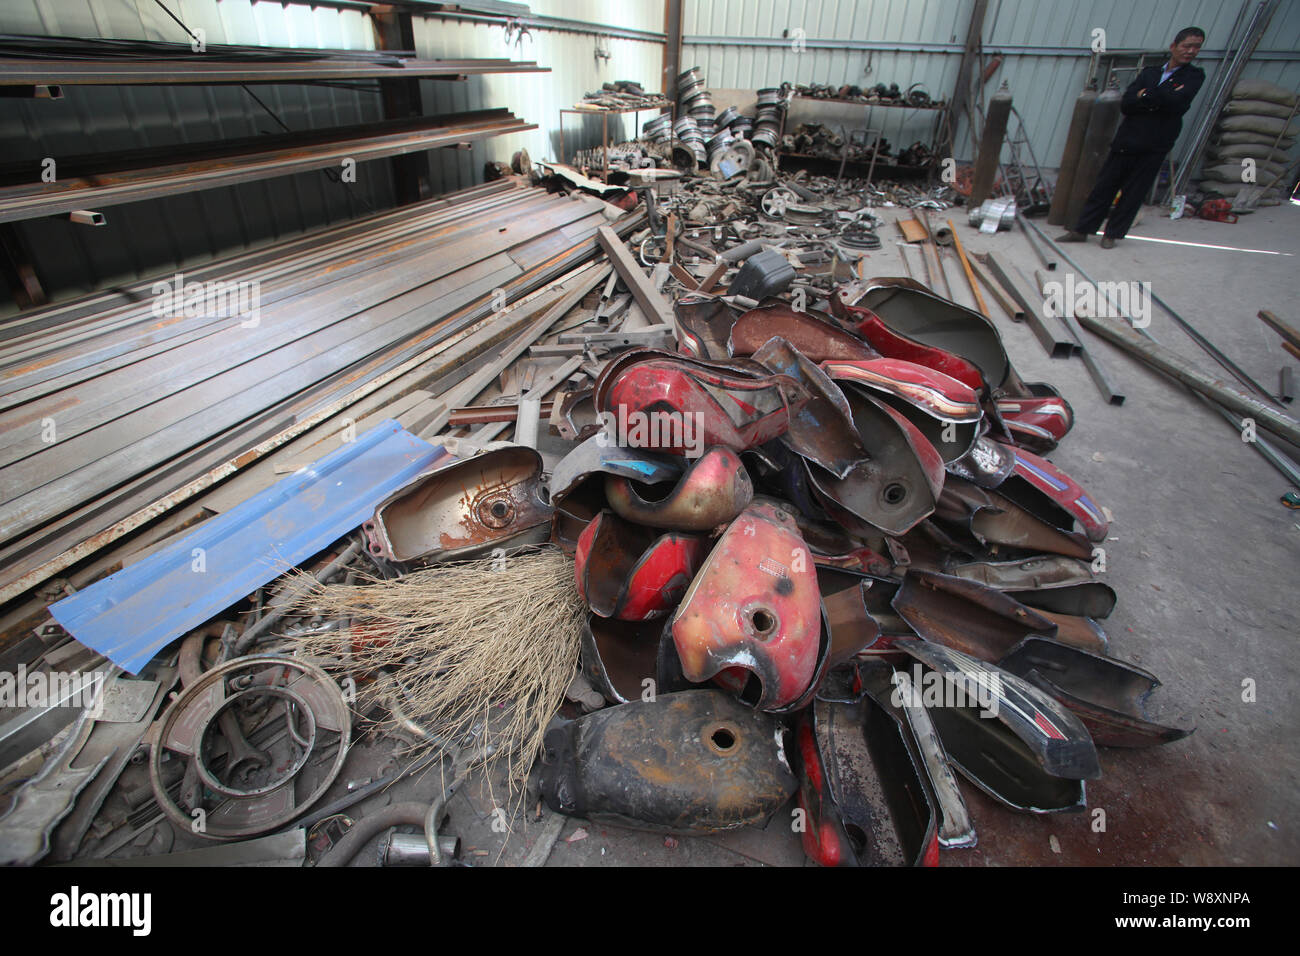 Scraps of vehicles for making robots are seen at a workshop in Shengjing town, Zhangqiu, Jinan city, east Chinas Shandong province, 21 March 2014.   A Stock Photo